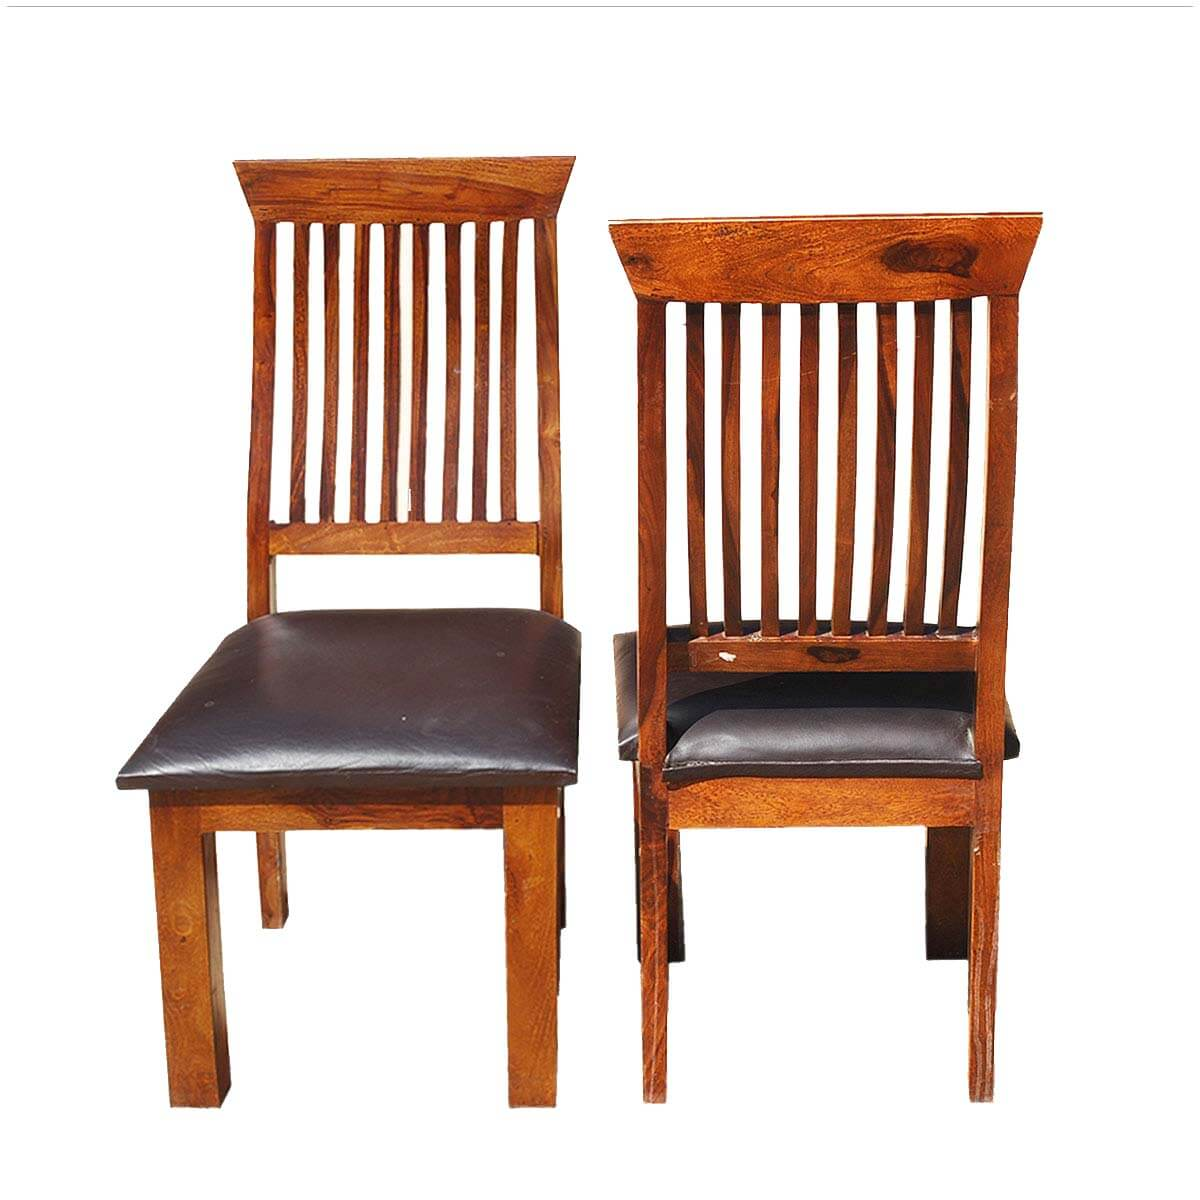 ergonomic chair settings bowl ikea solid wood and leather dining set of 2